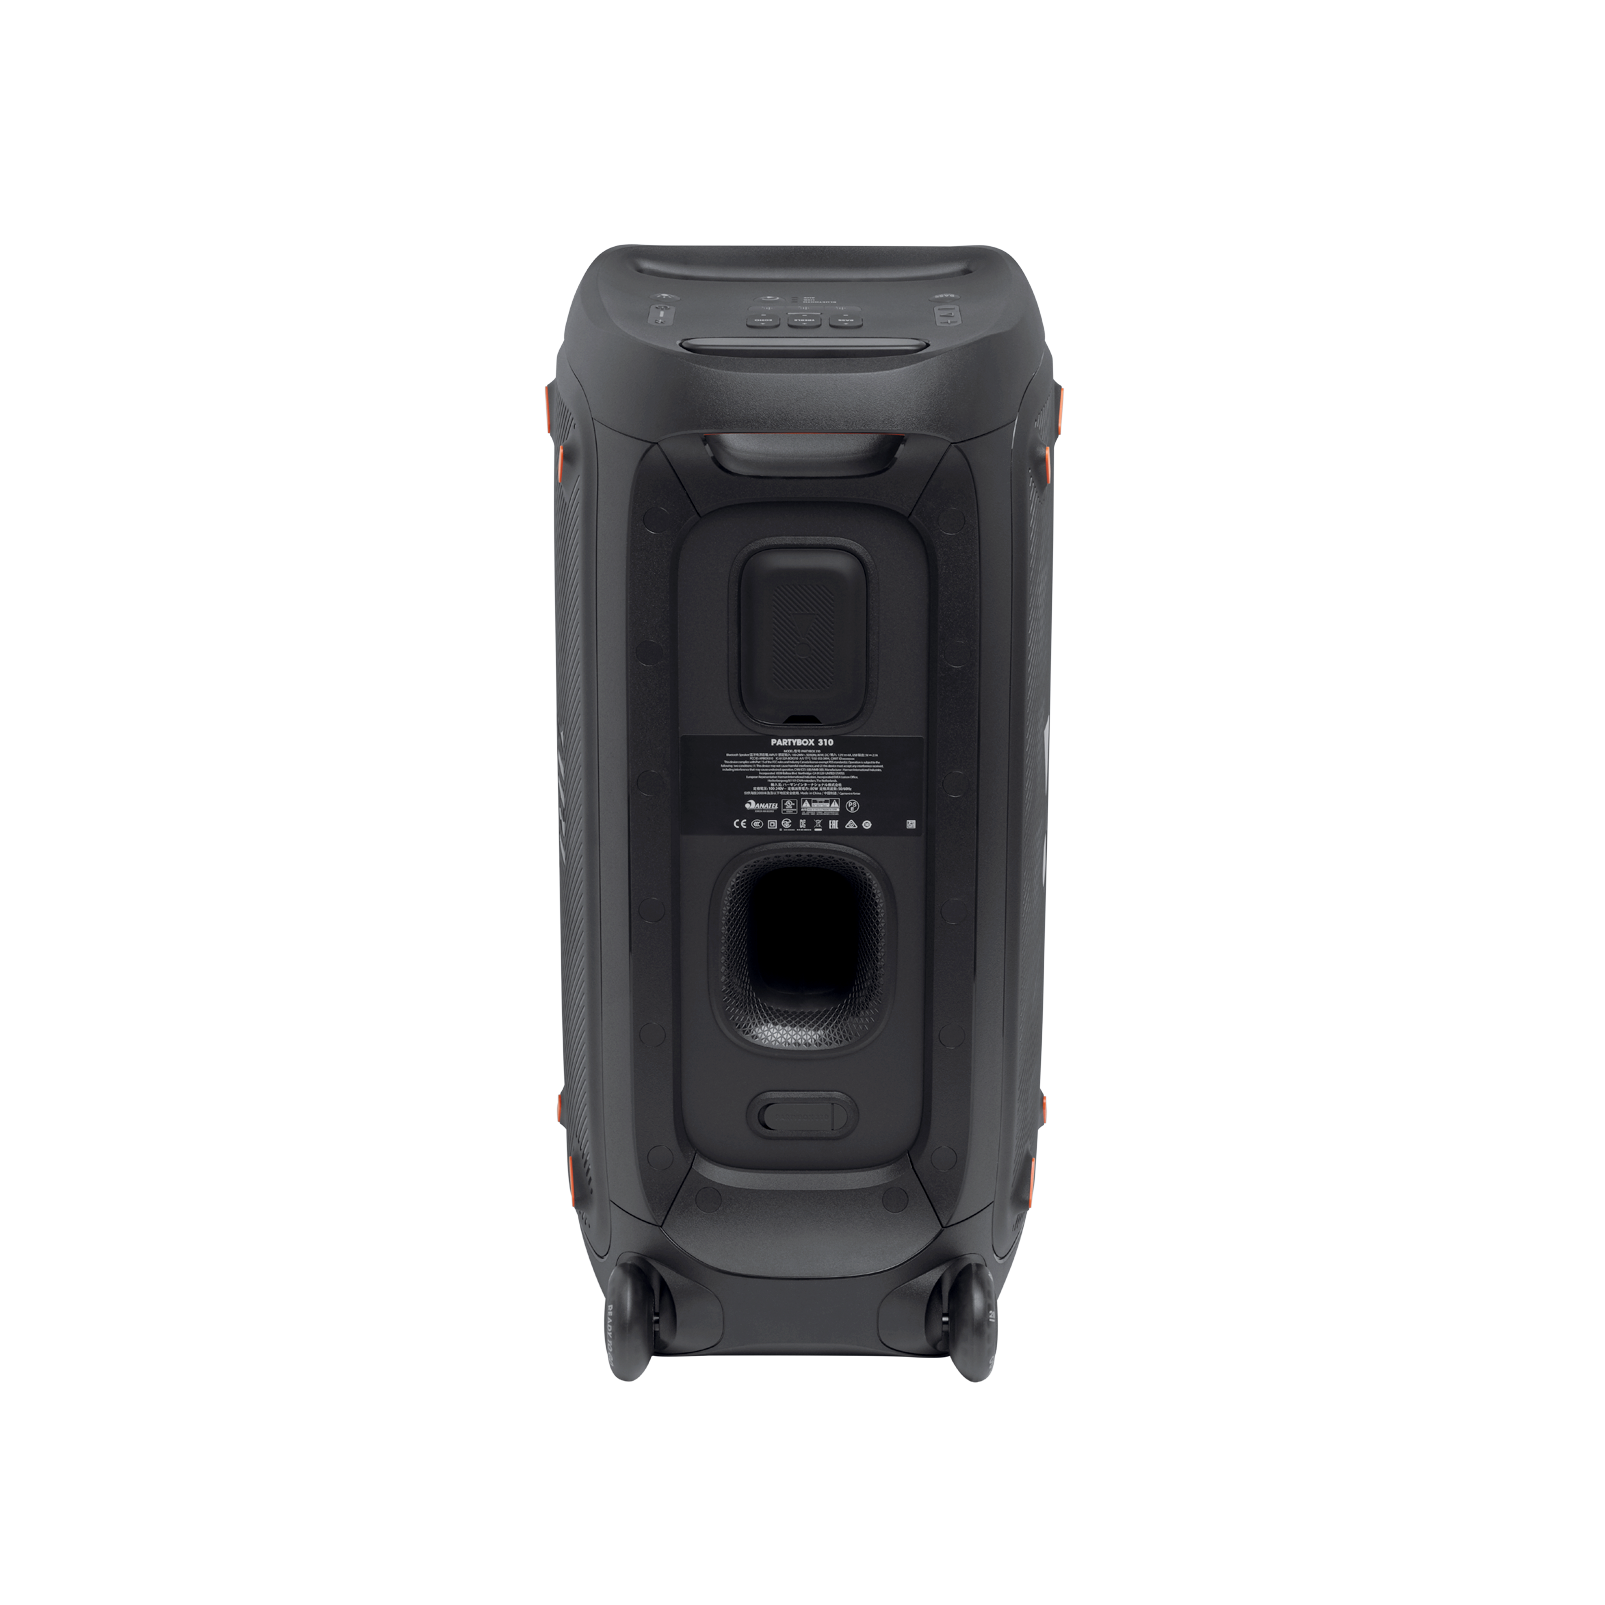 JBL Partybox 310 + Mic - Black - Portable party speaker with 240W powerful sound, built-in lightshow and wired mic - Back